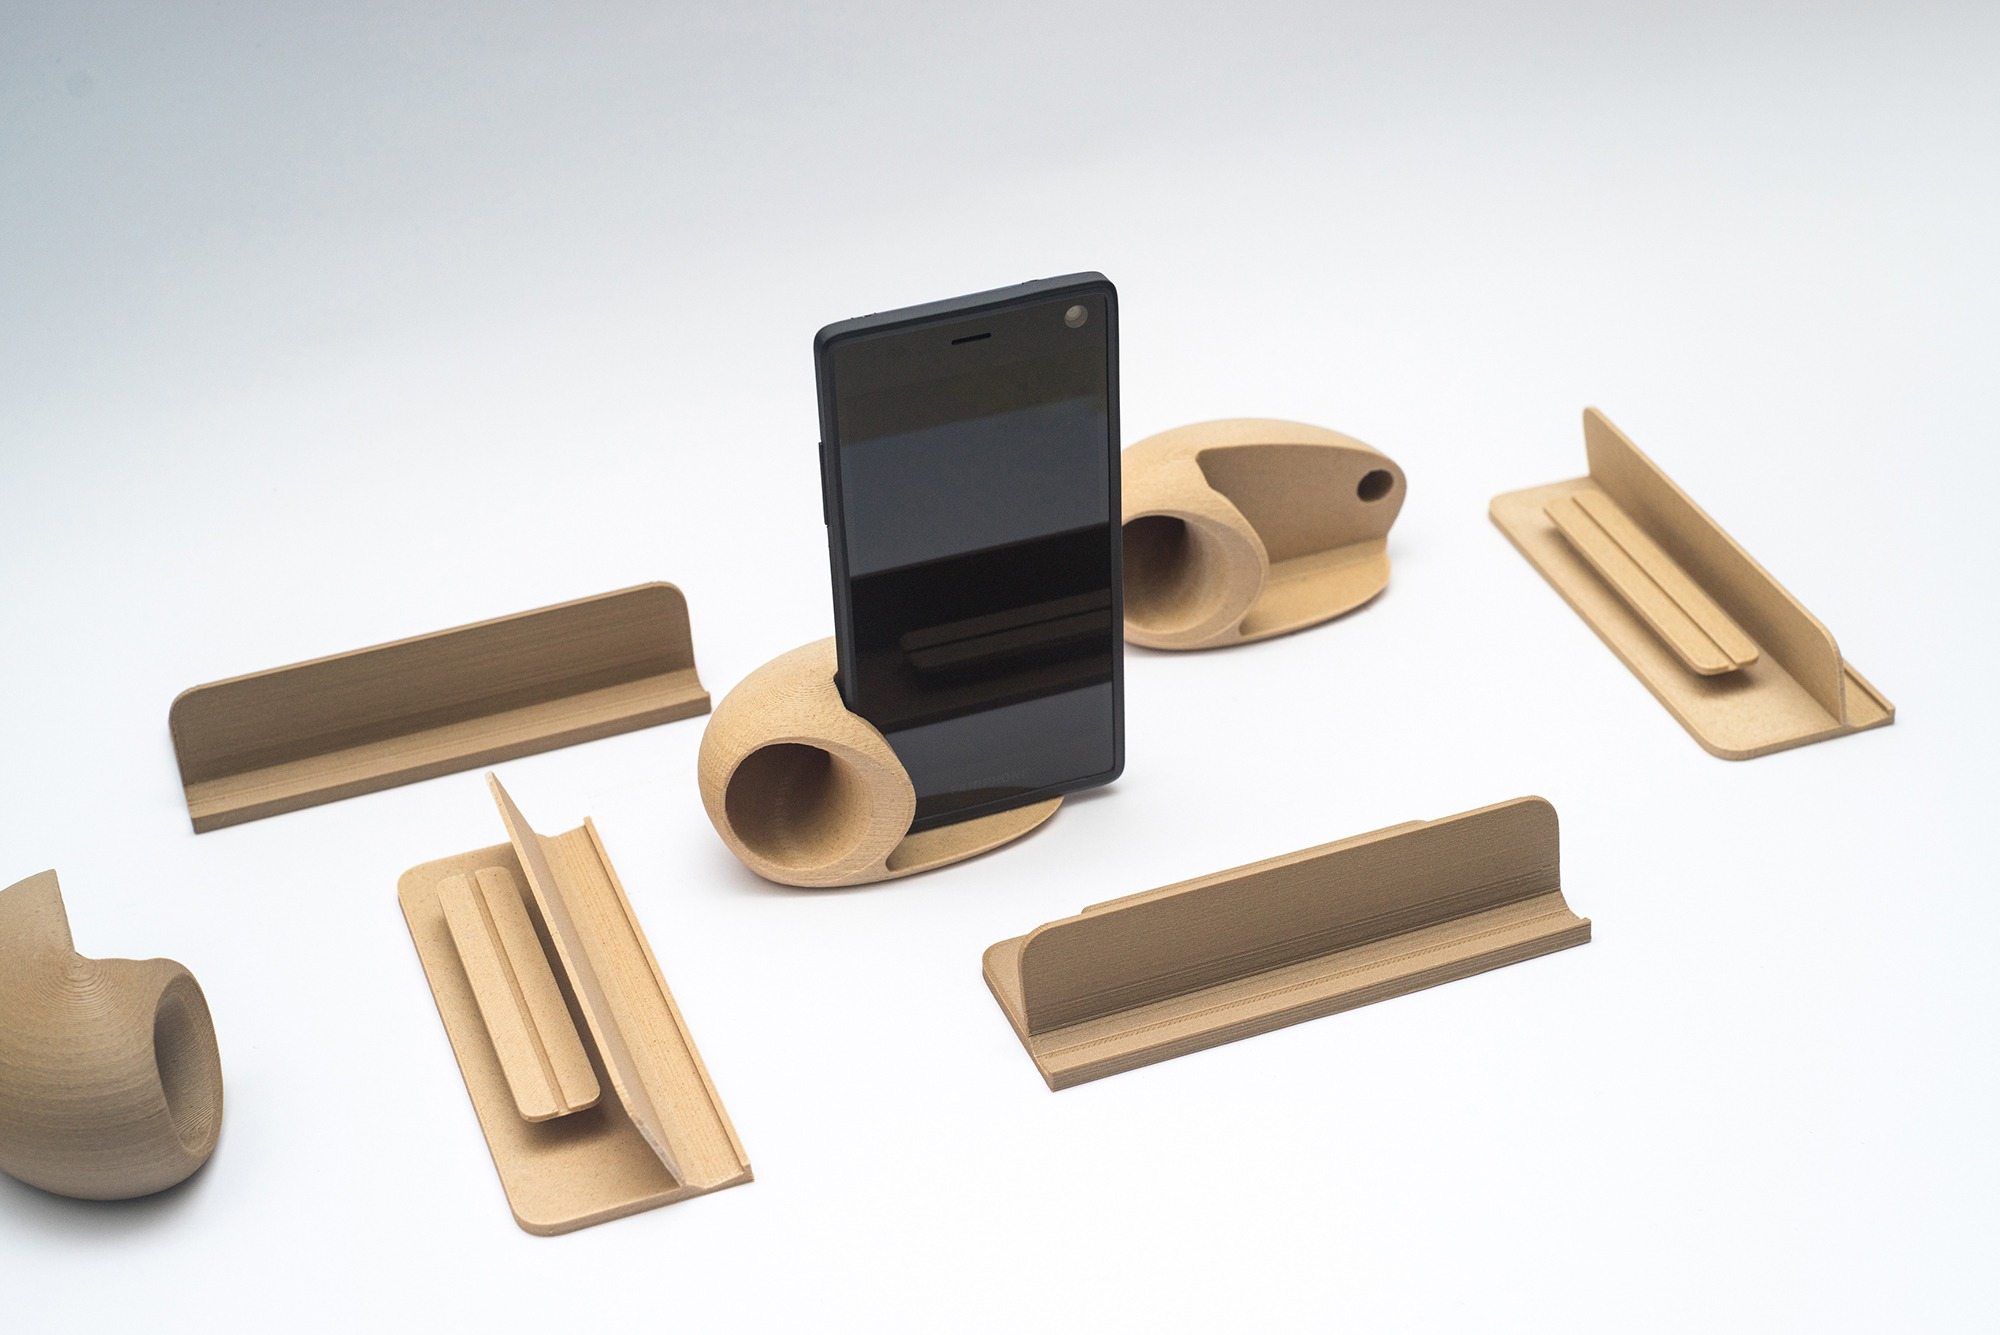 fairphone-3d-printed-wood-accesories-00